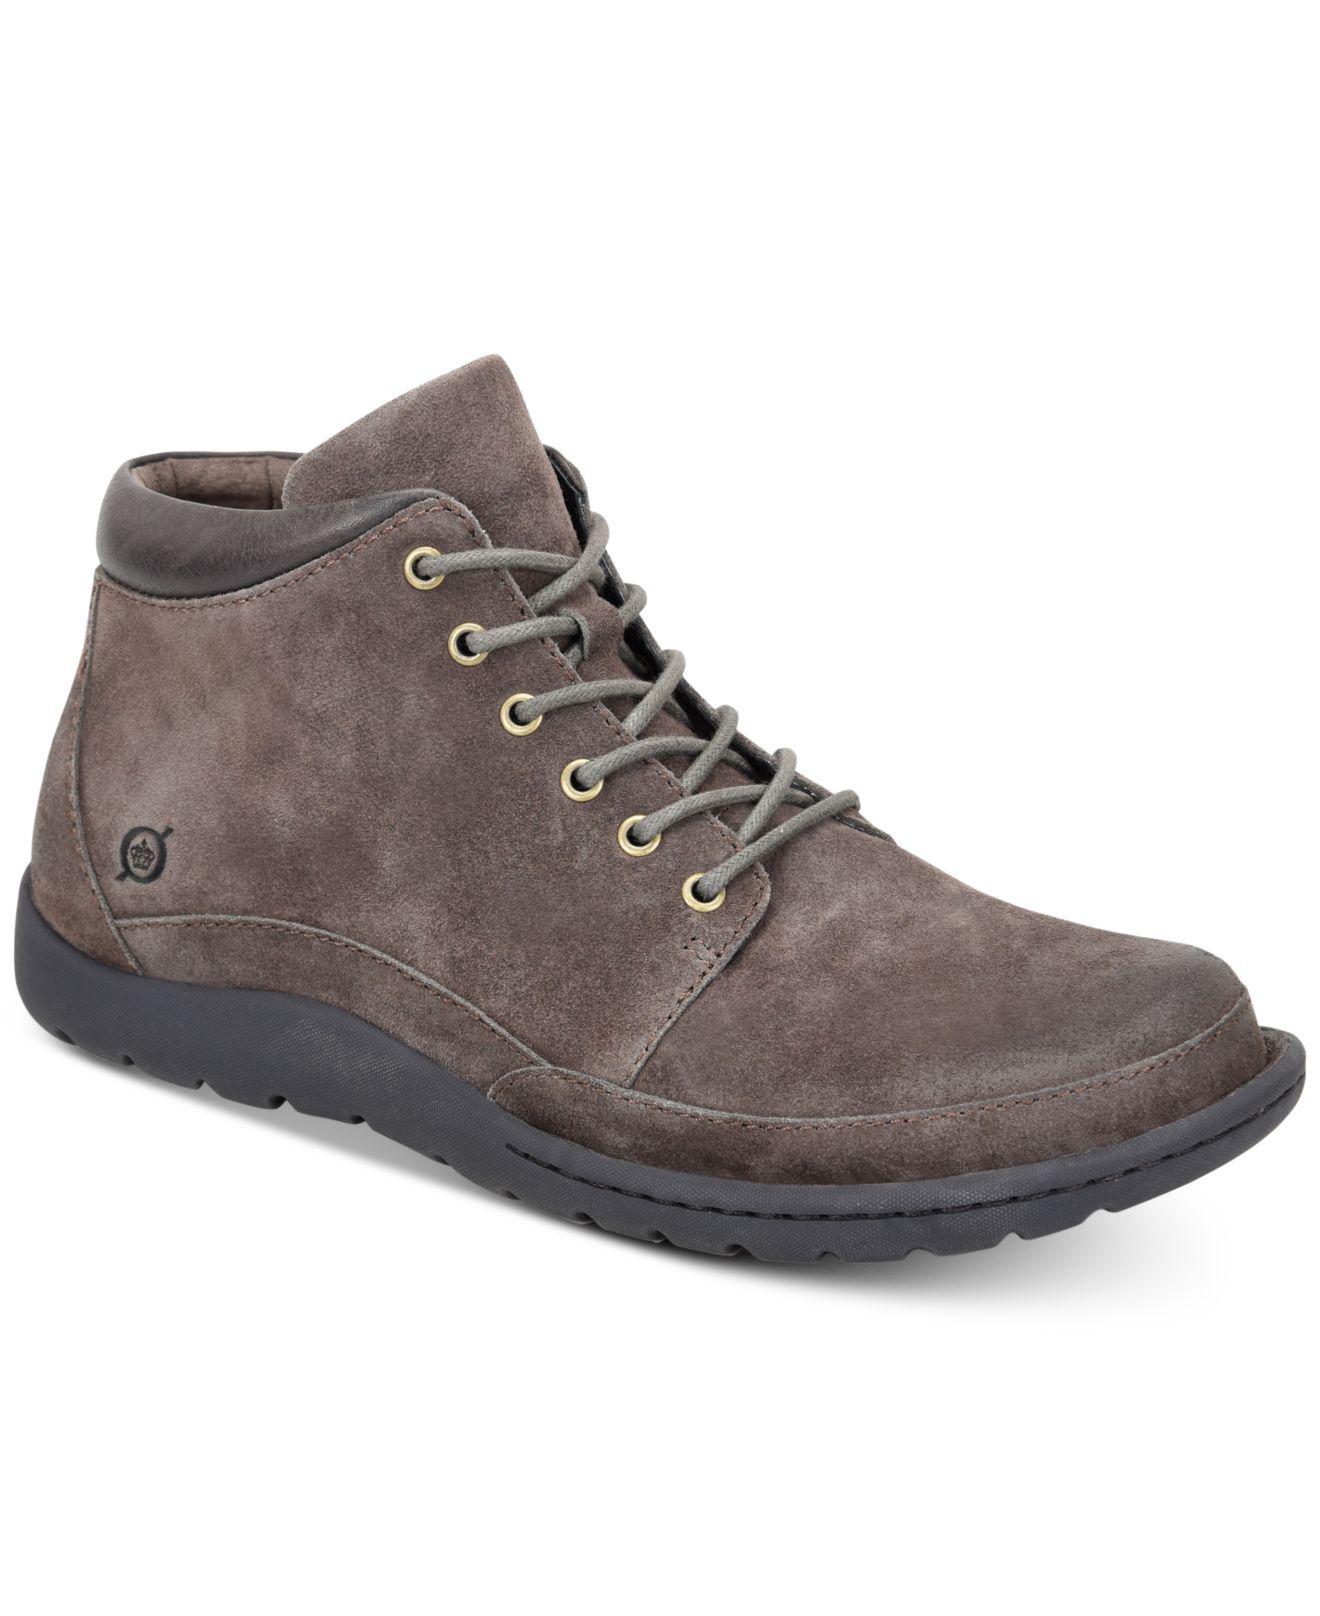 1a60dcdc00a Born Nigel Boots in Gray for Men - Lyst